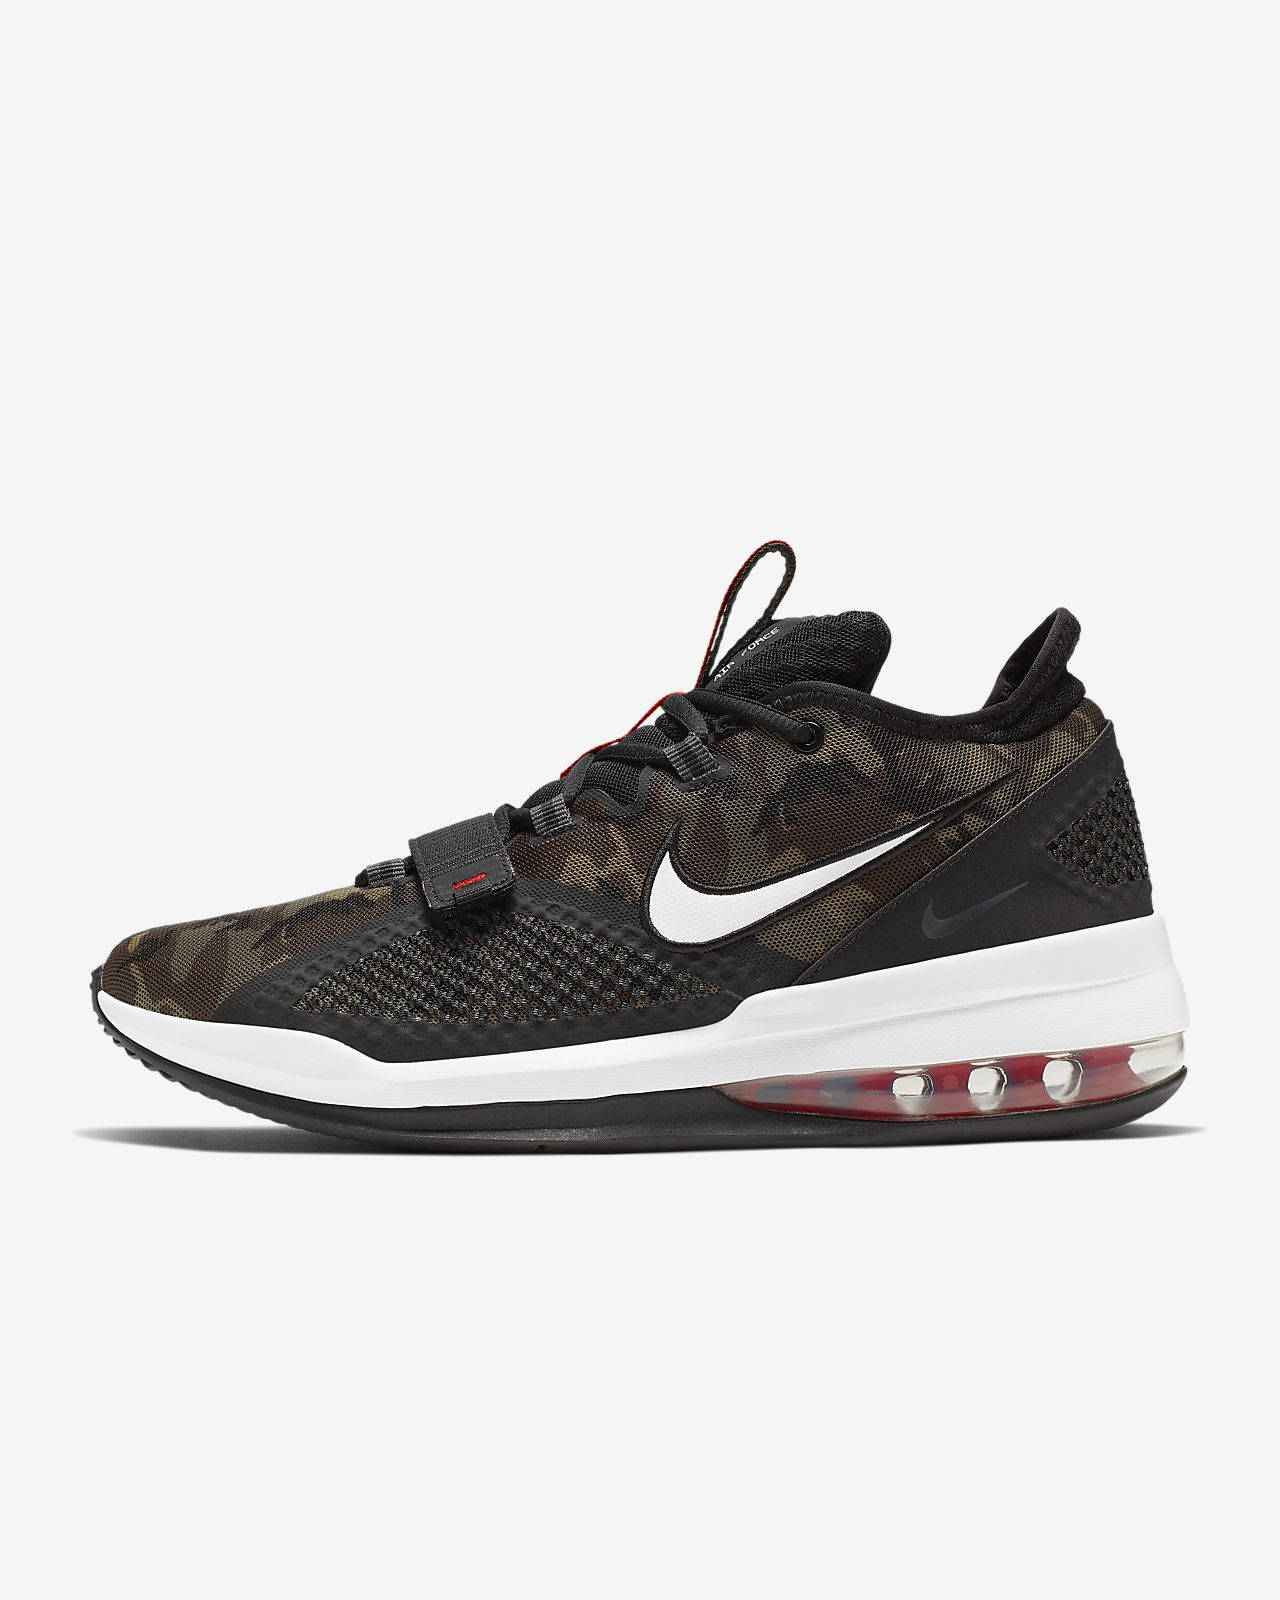 Max Force De Basketball Nike Air Low Chaussure ZuTOXPiwk